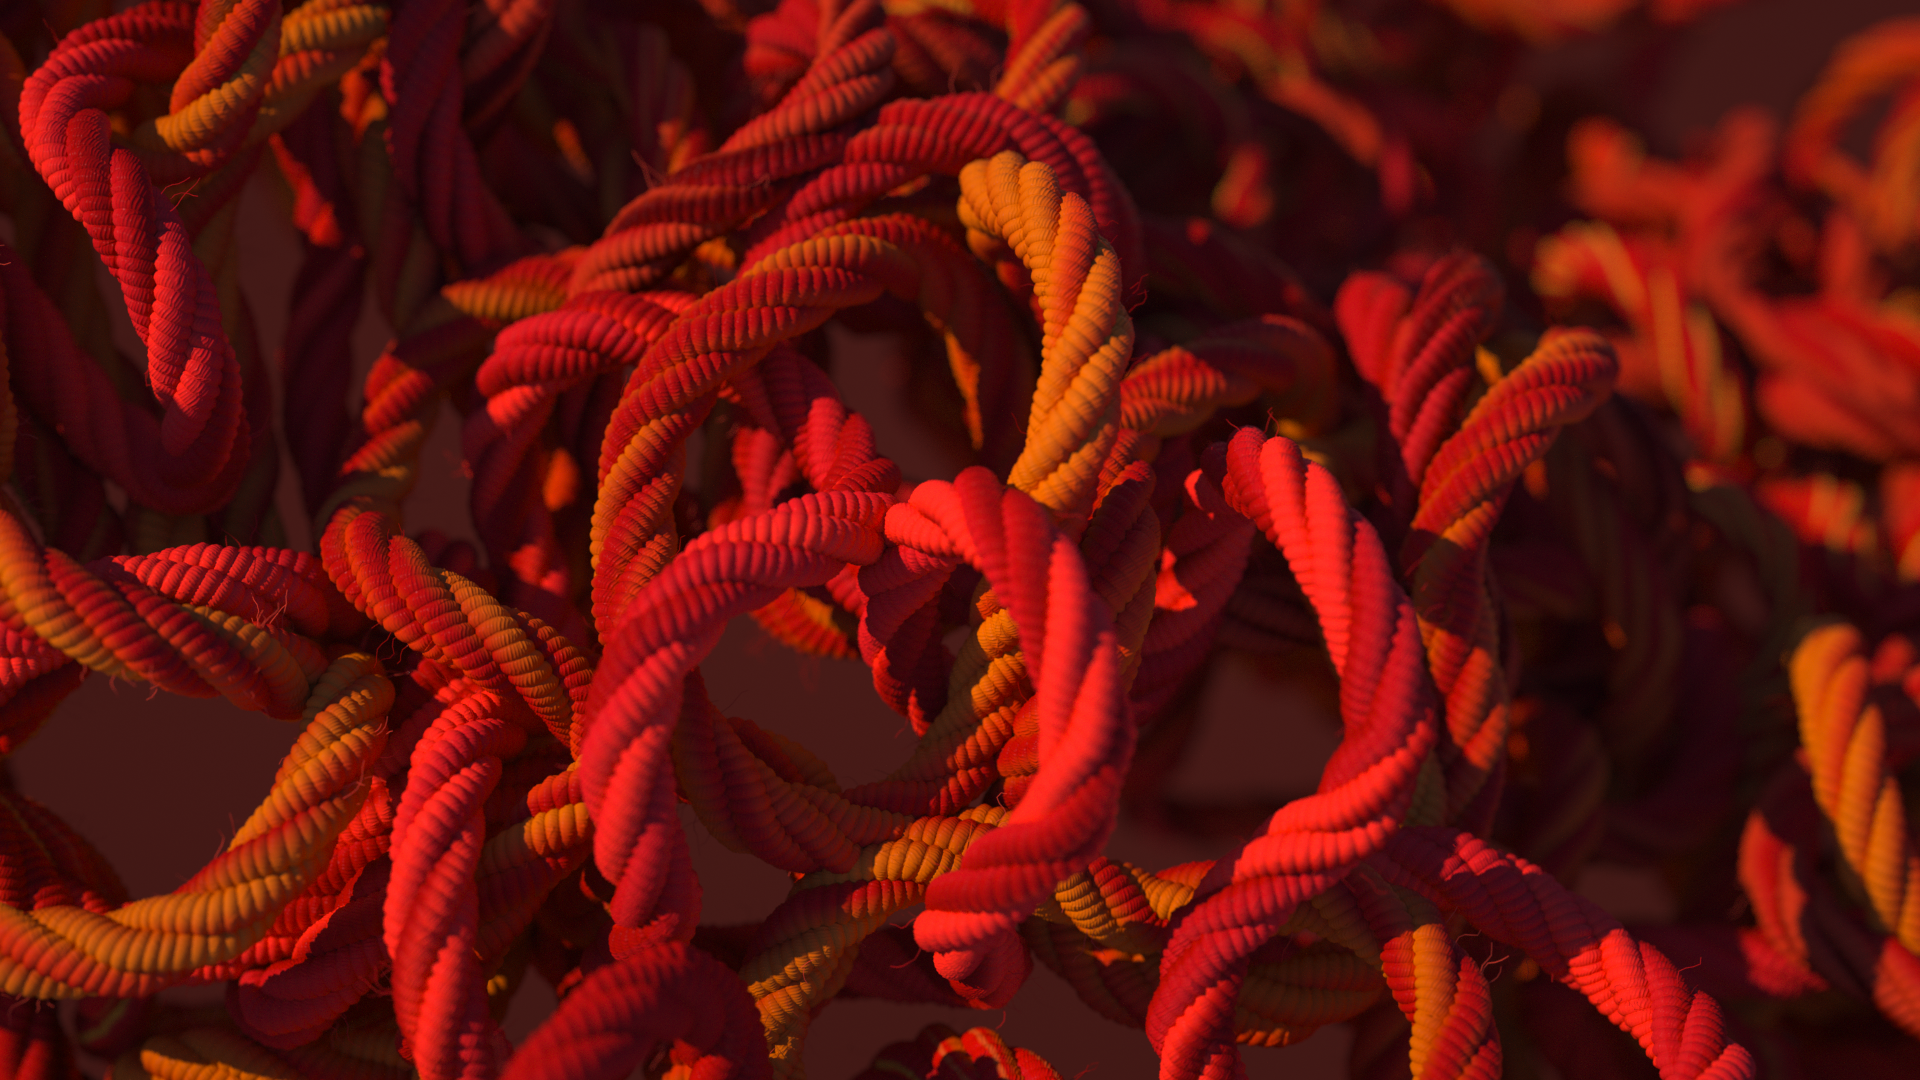 Knit_009_0025.png